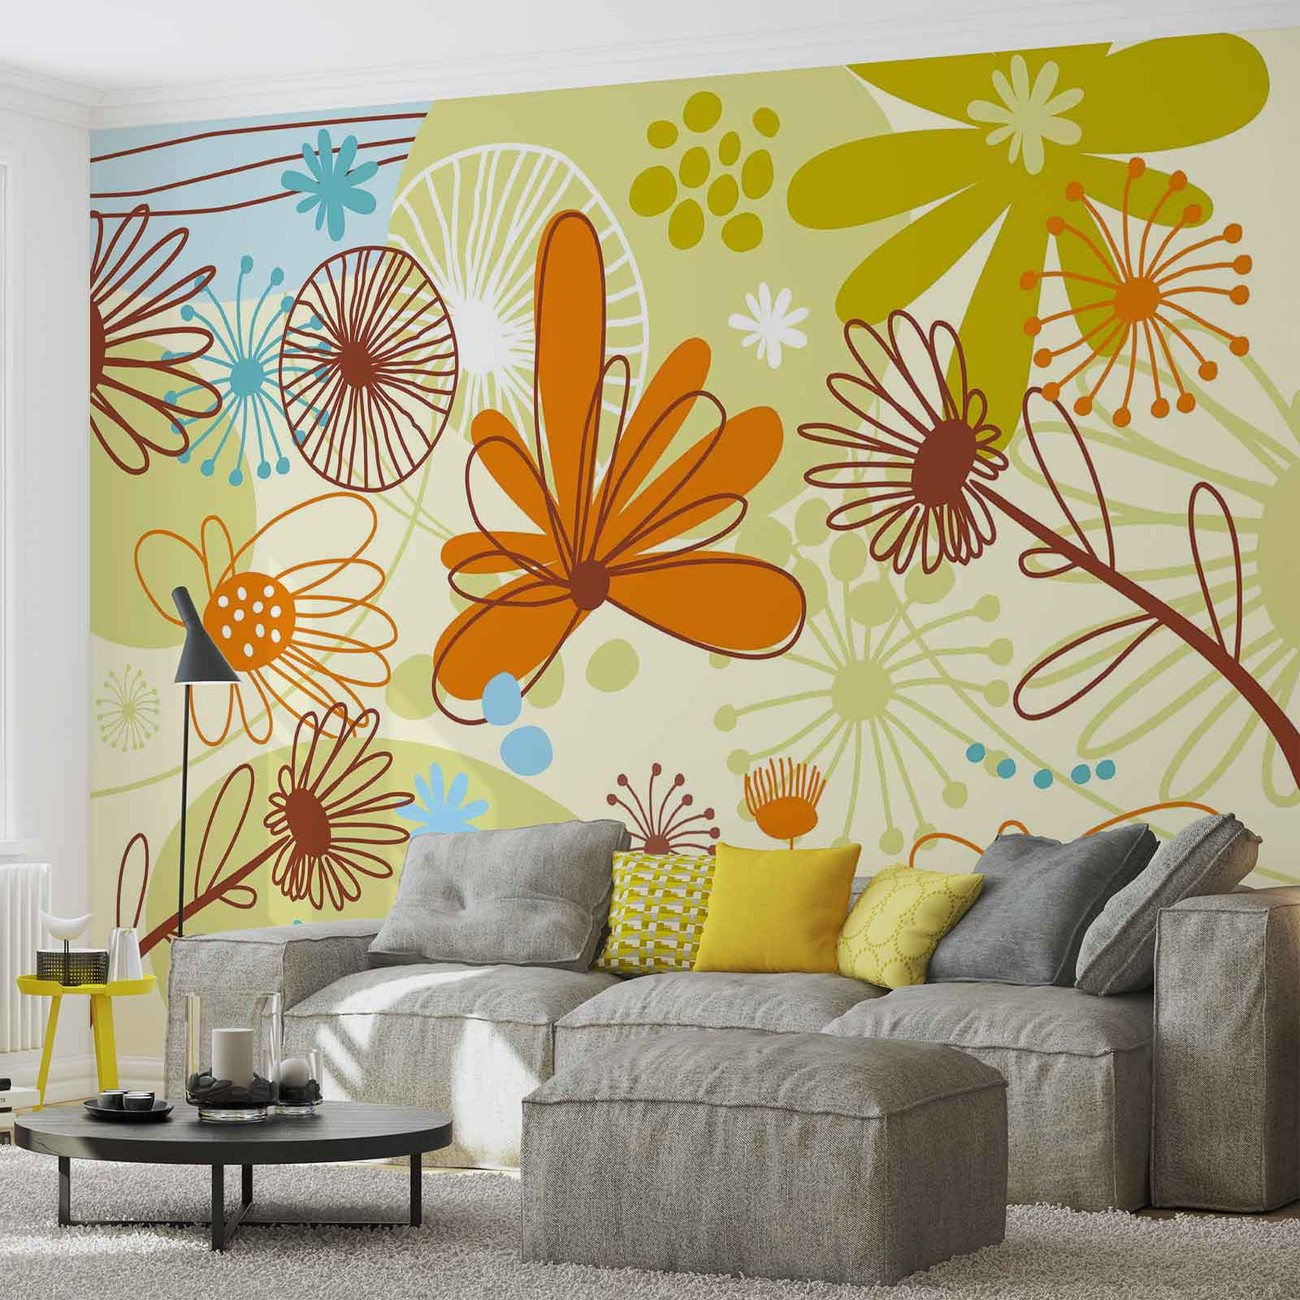 Floral pattern wall paper mural buy at europosters for Mural flower